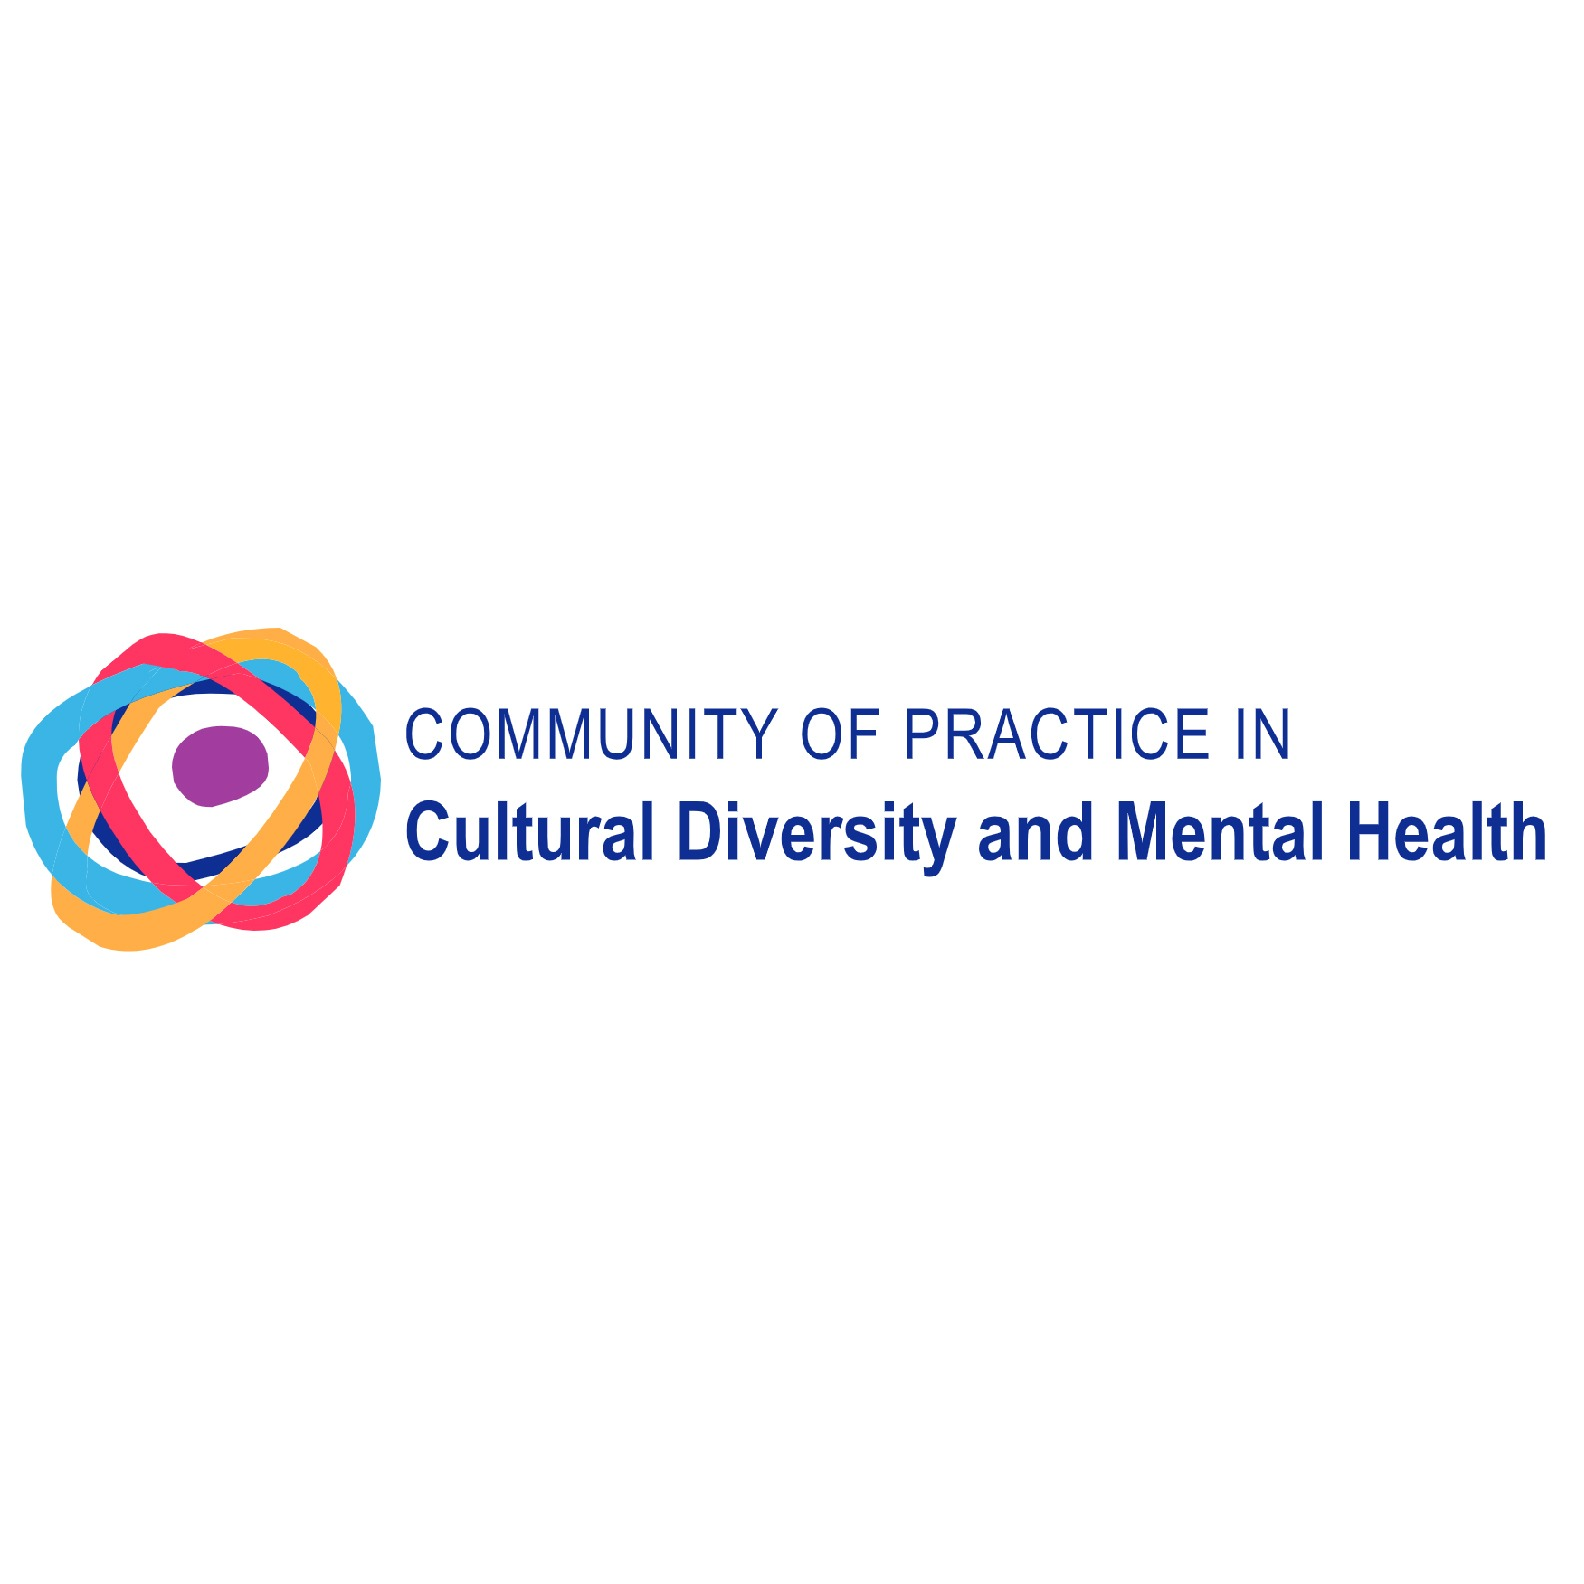 Community of Practice in Cultural Diversity and Mental Health